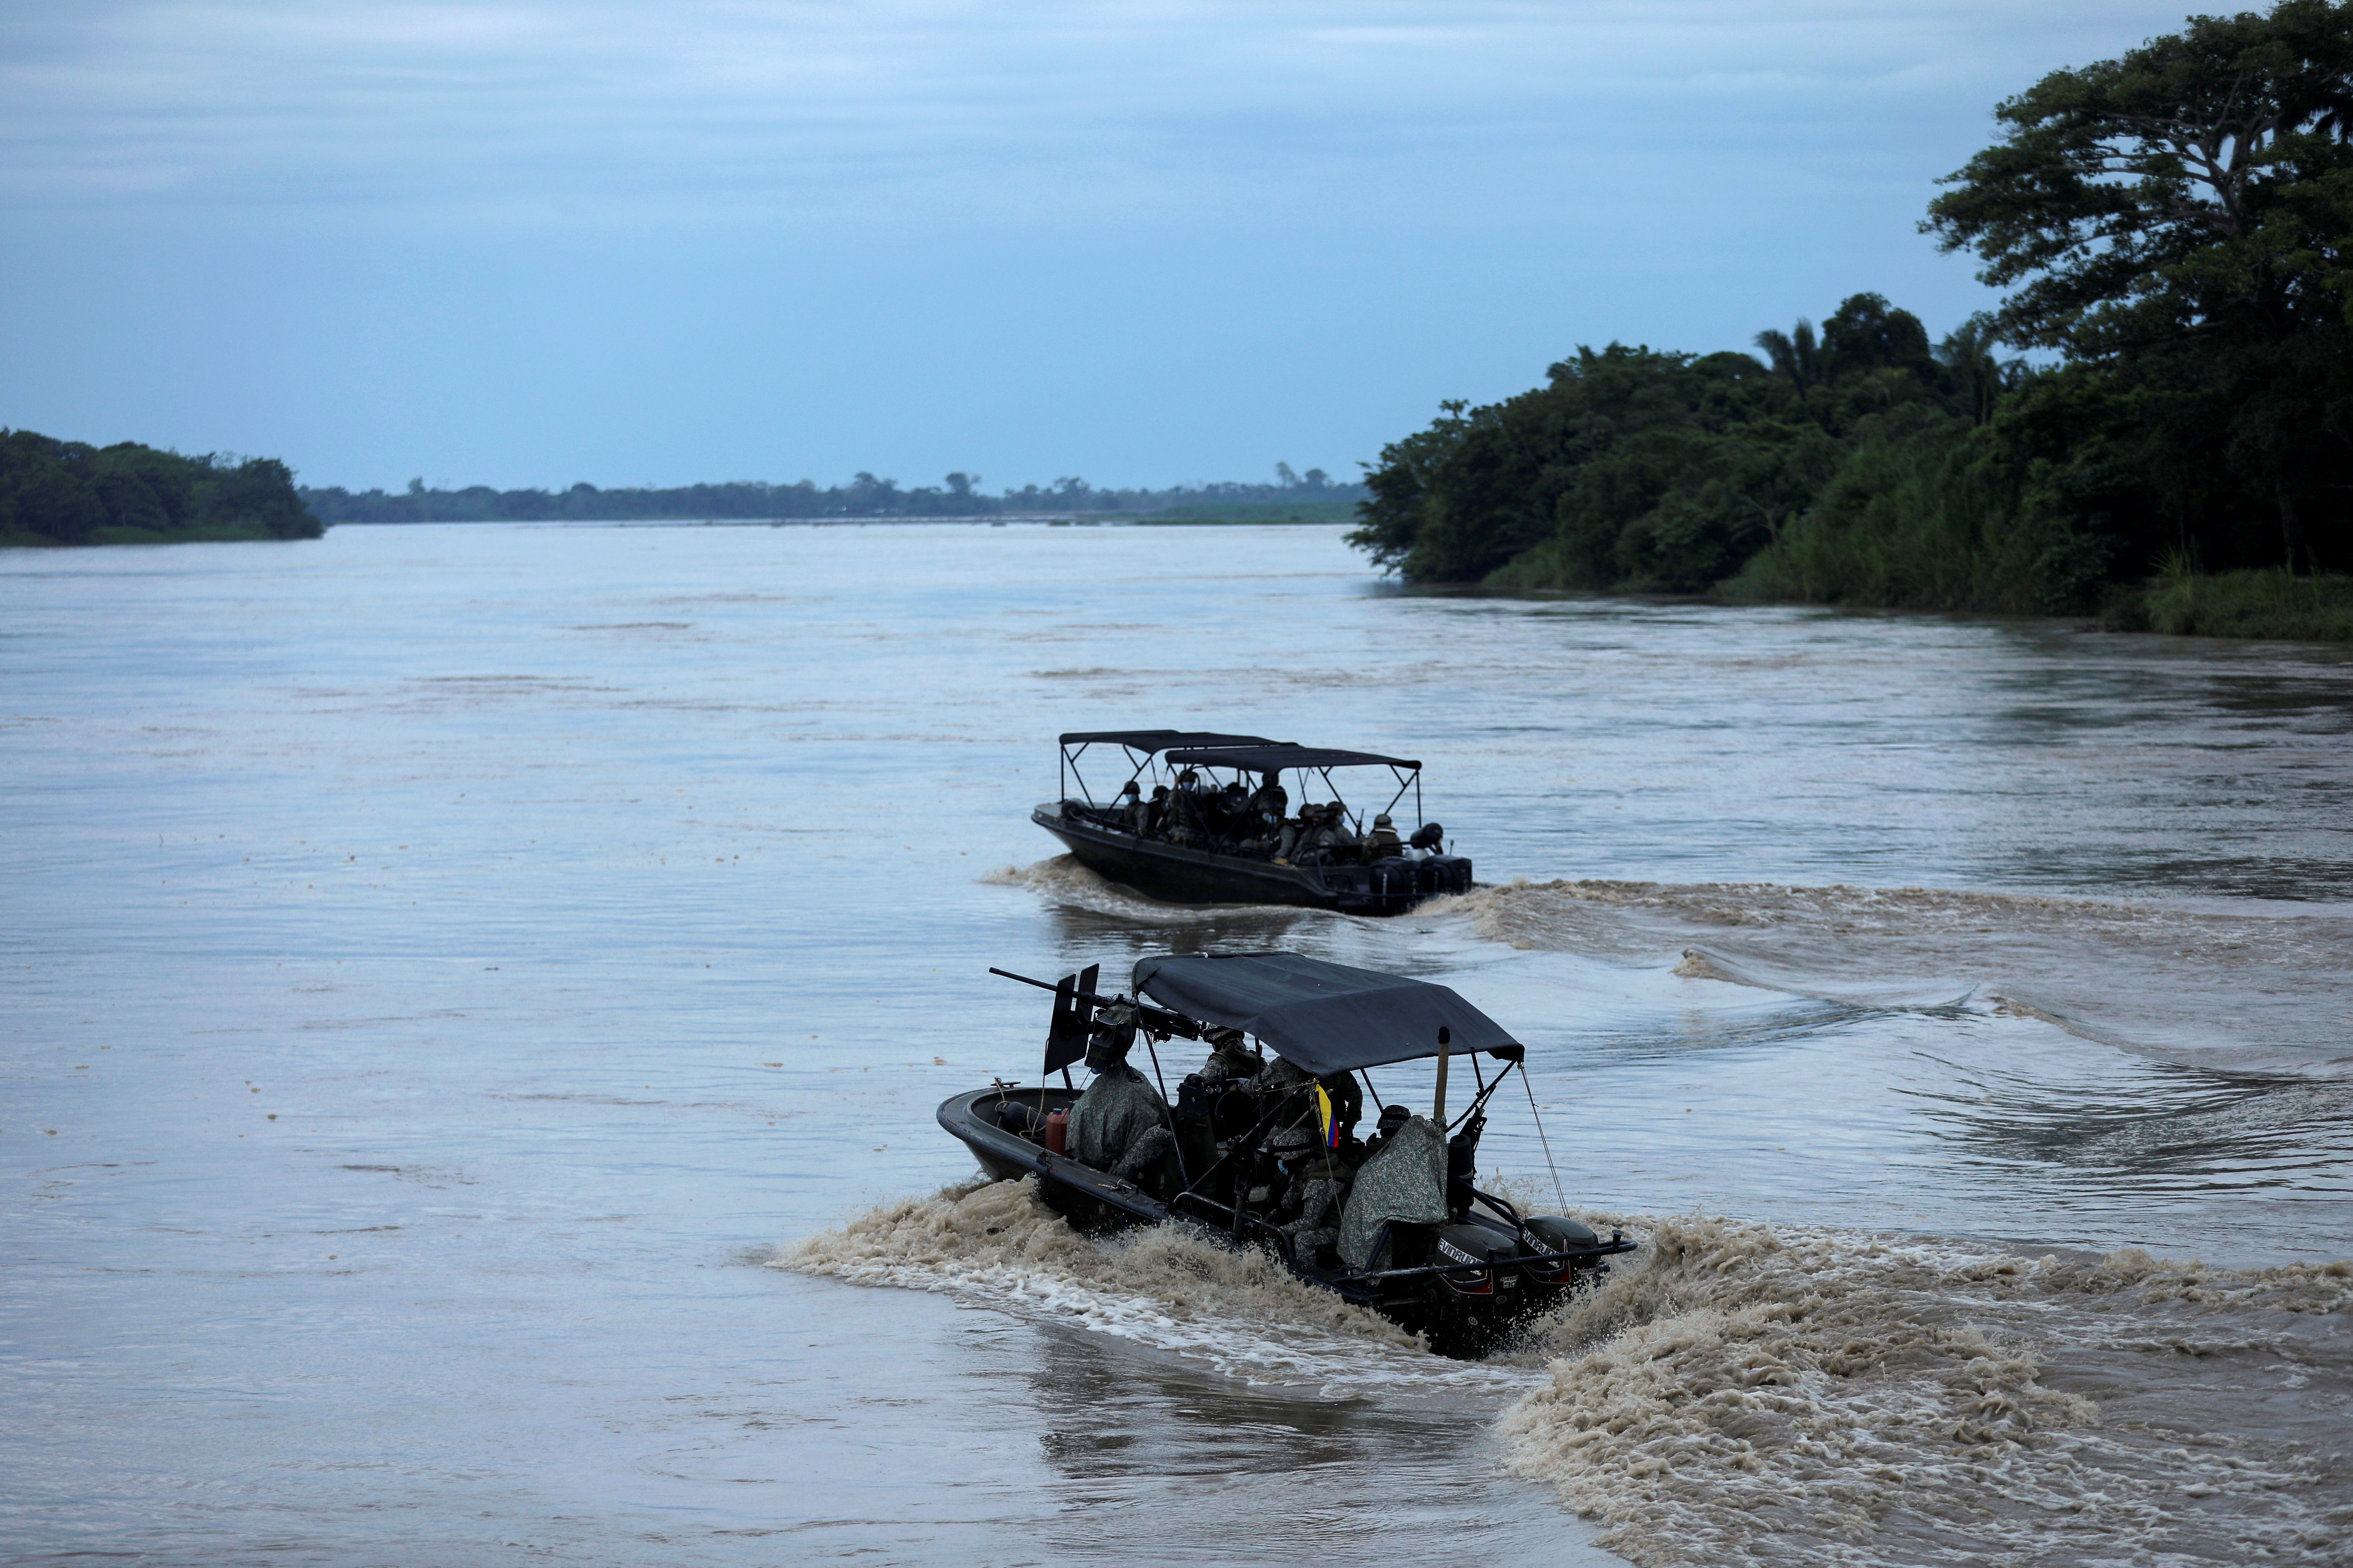 Colombian soldiers patrol by boat on the Arauca River, at the border between Colombia and Venezuela, as seen from Arauquita, Colombia March 28, 2021. REUTERS/Luisa Gonzalez